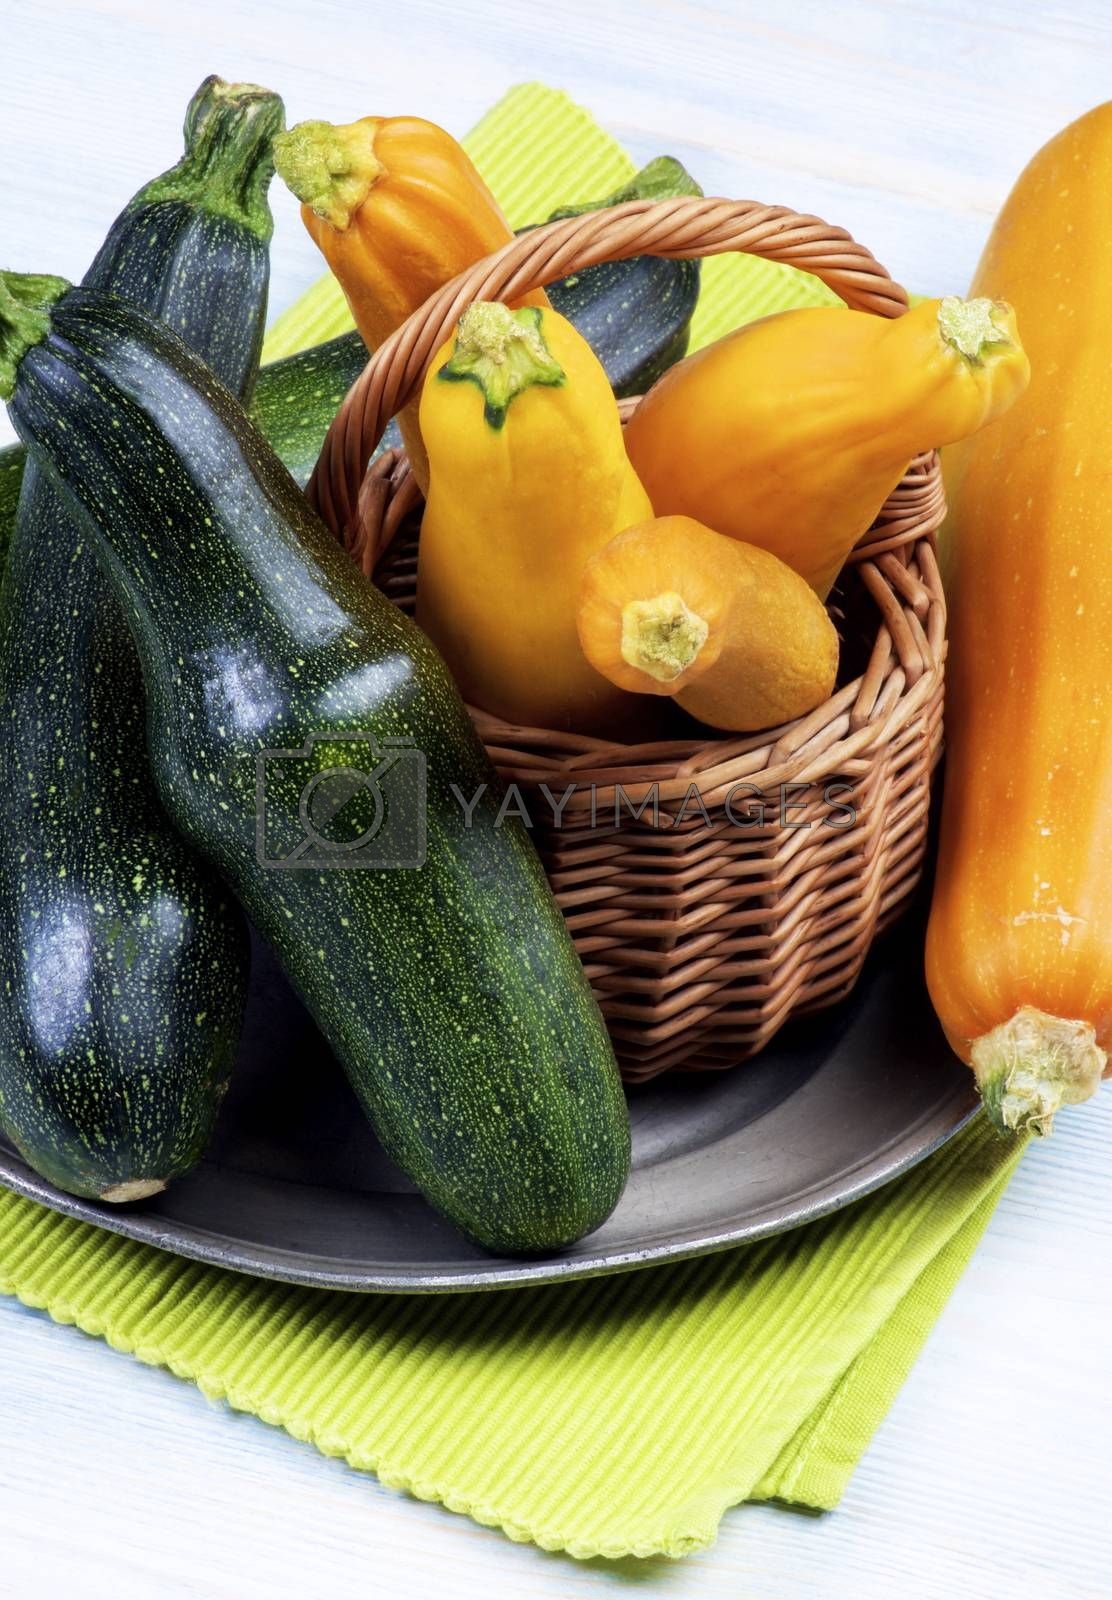 Arrangement of Green and Yellow Fresh Ripe Zucchini in Wicker Basket on Tin Plate closeup on Wooden background